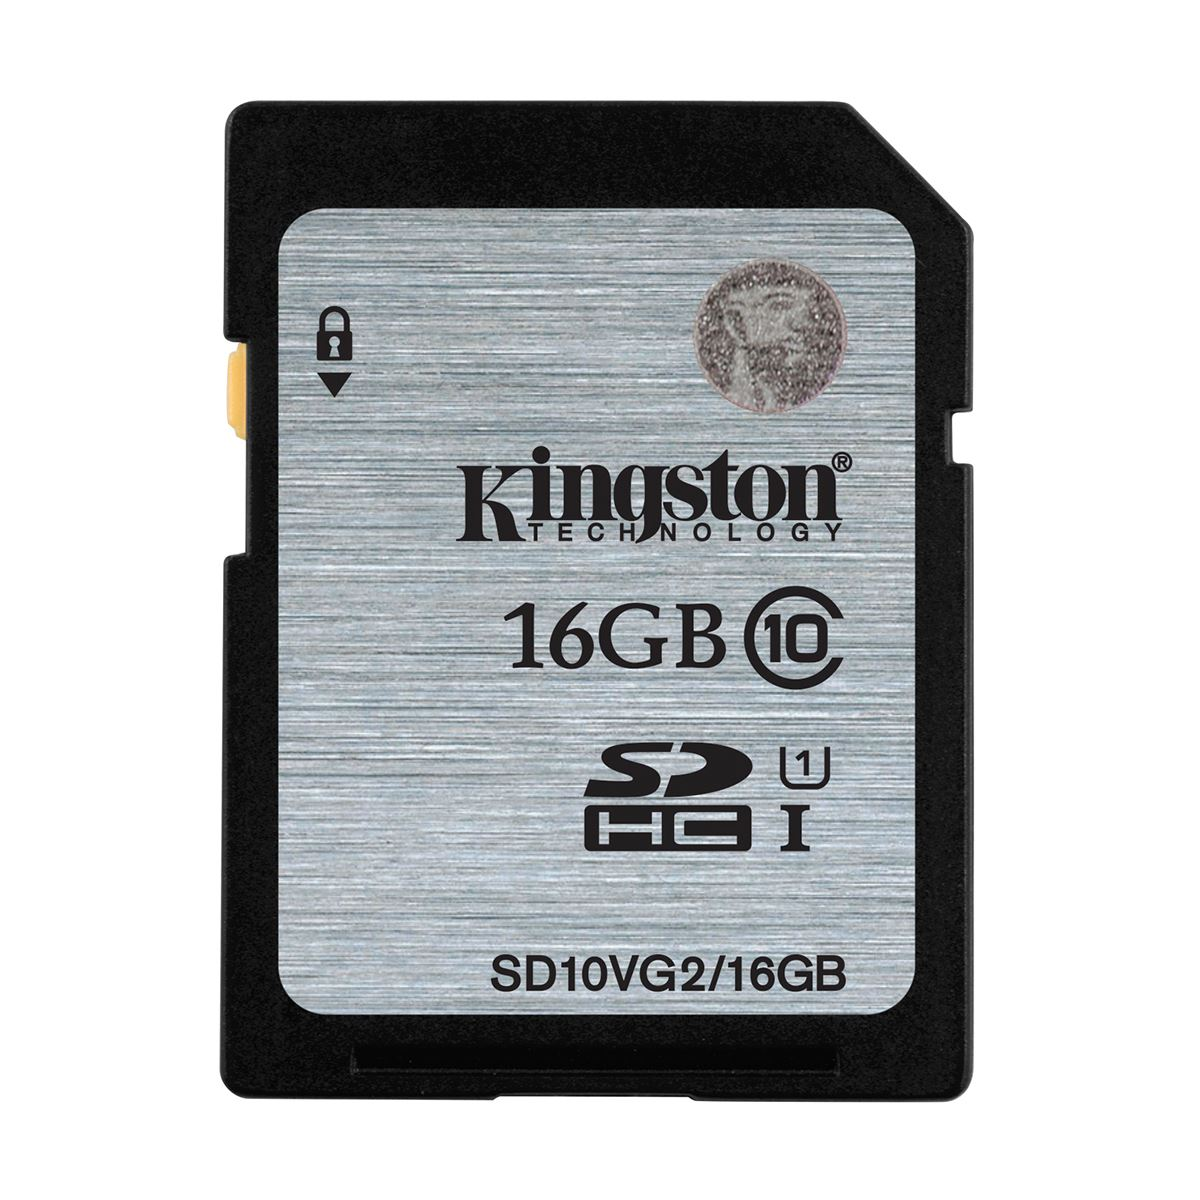 Tarjeta kingston 16gb sdhc c10 flash  - Sanborns